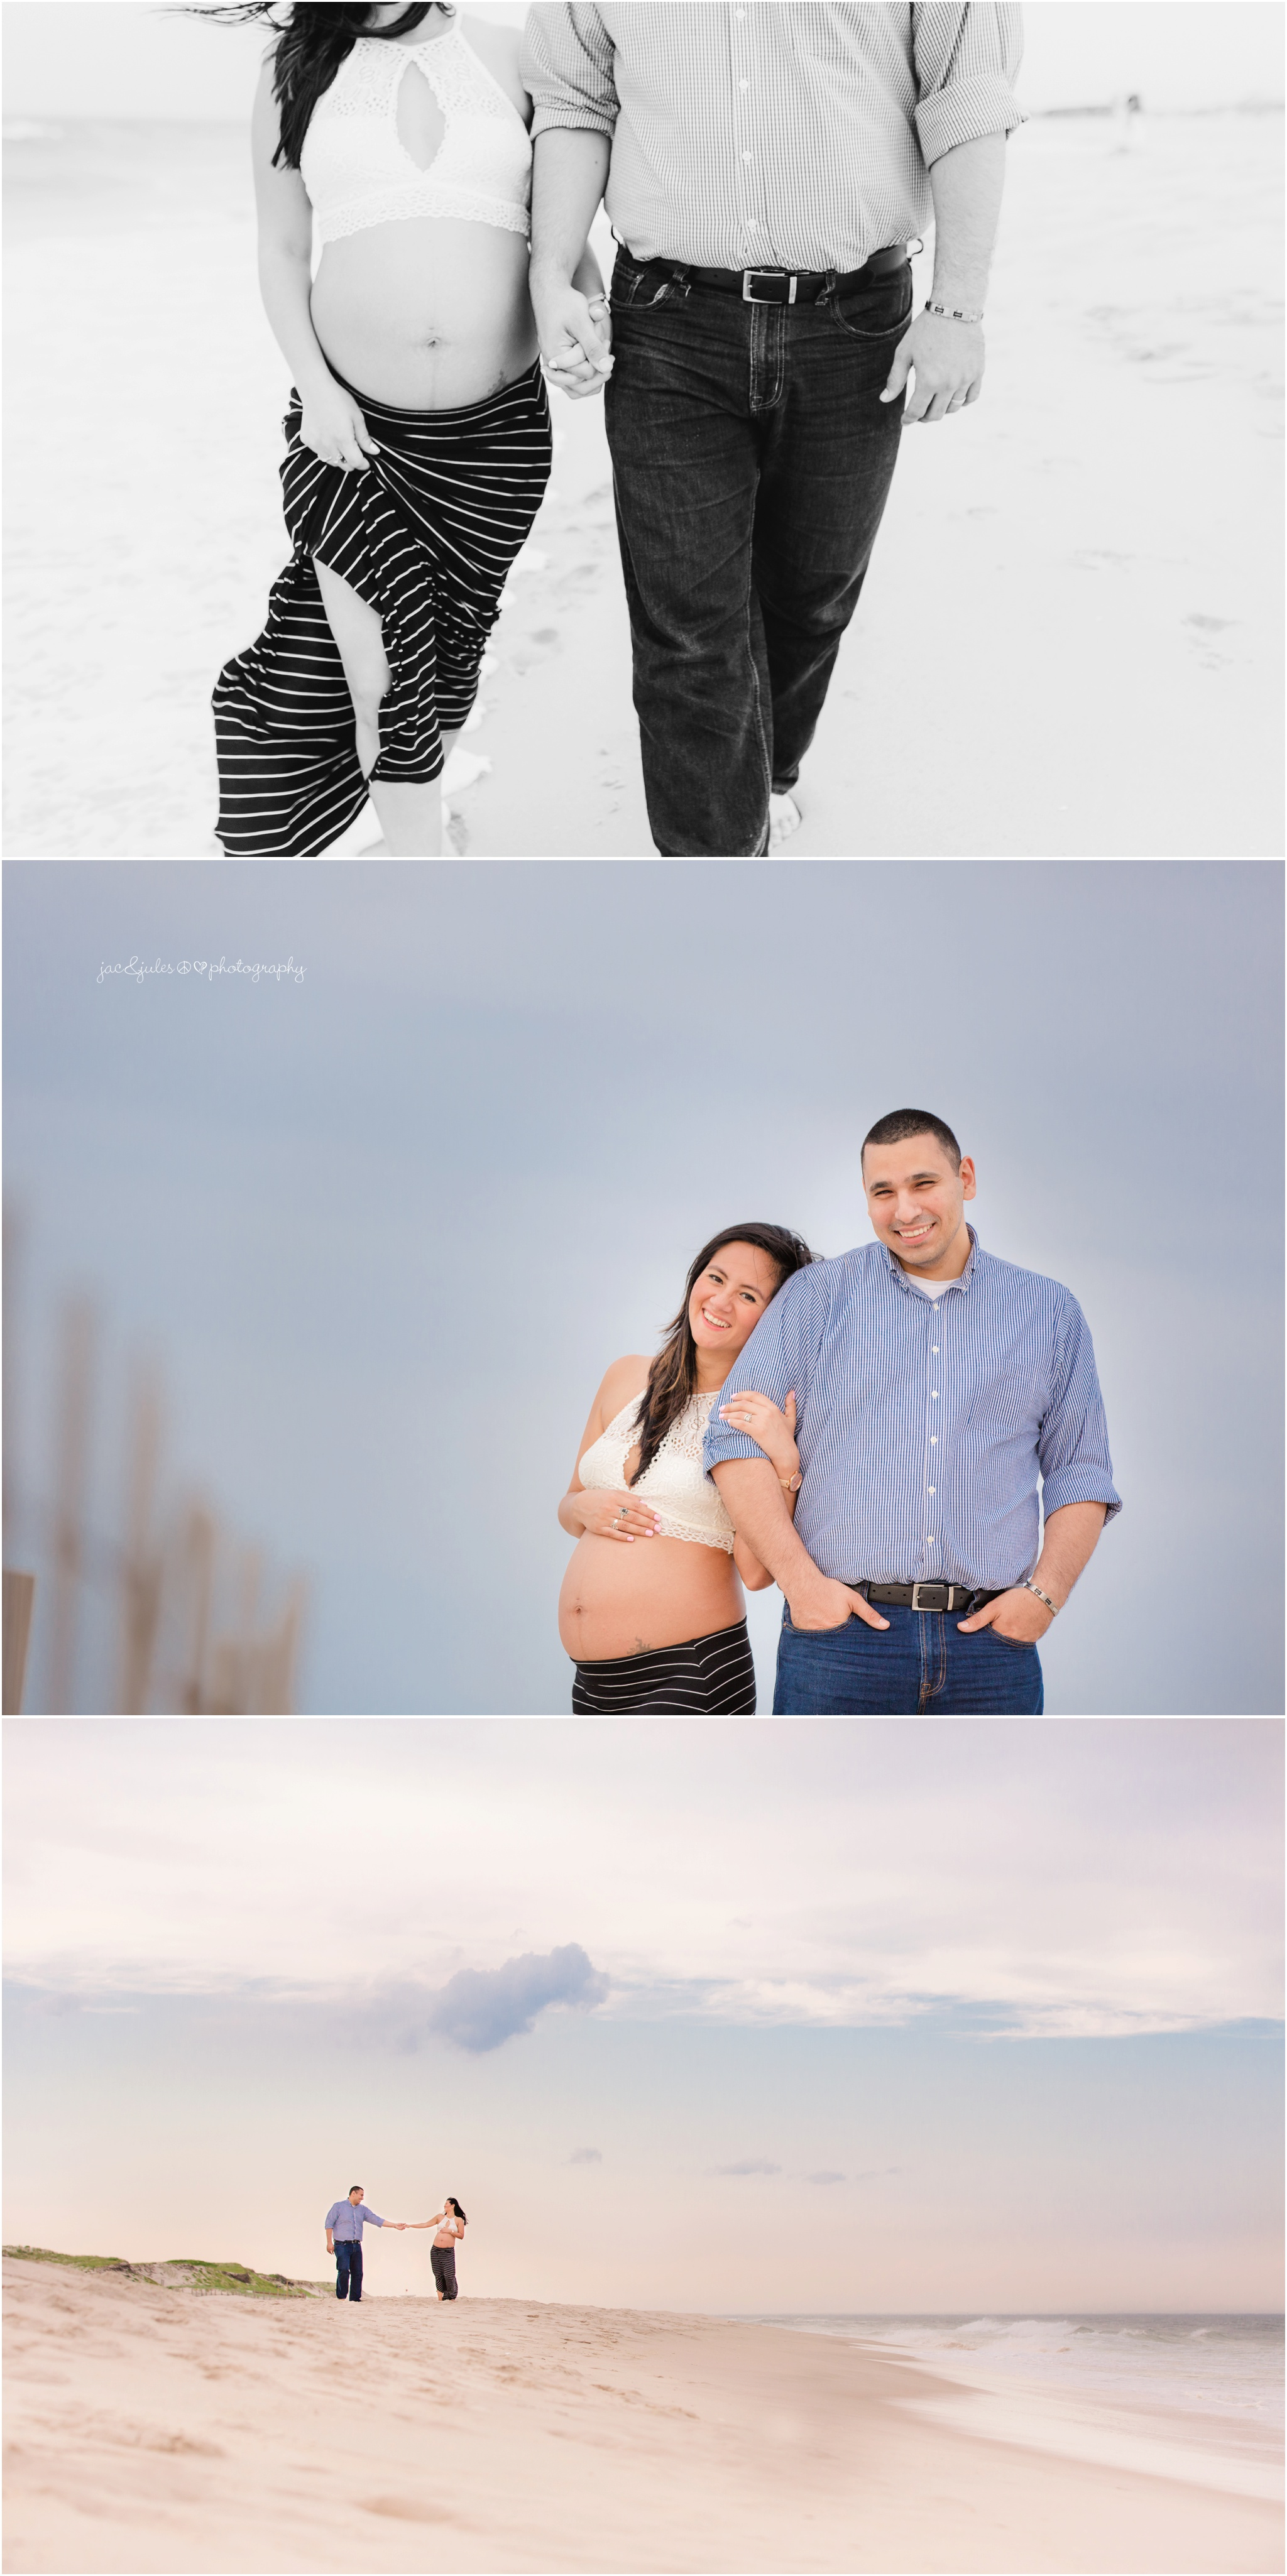 seaside-park-maternity-photographer_0006.jpg